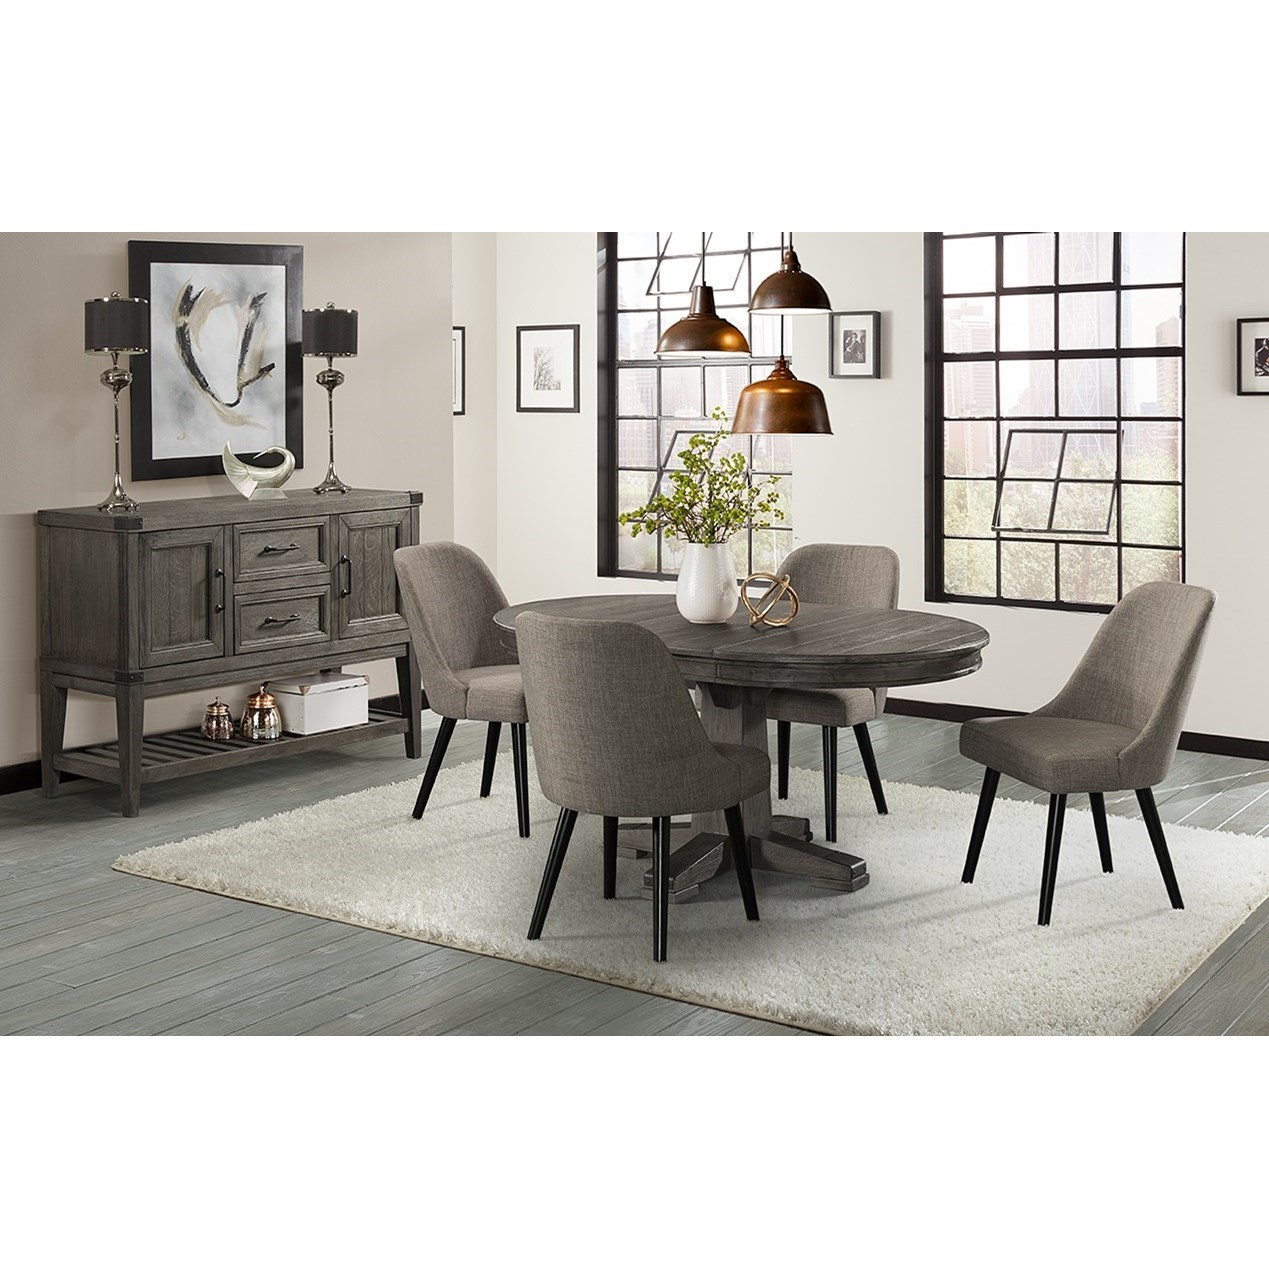 intercon foundry casual dining room group rife 39 s home. Black Bedroom Furniture Sets. Home Design Ideas